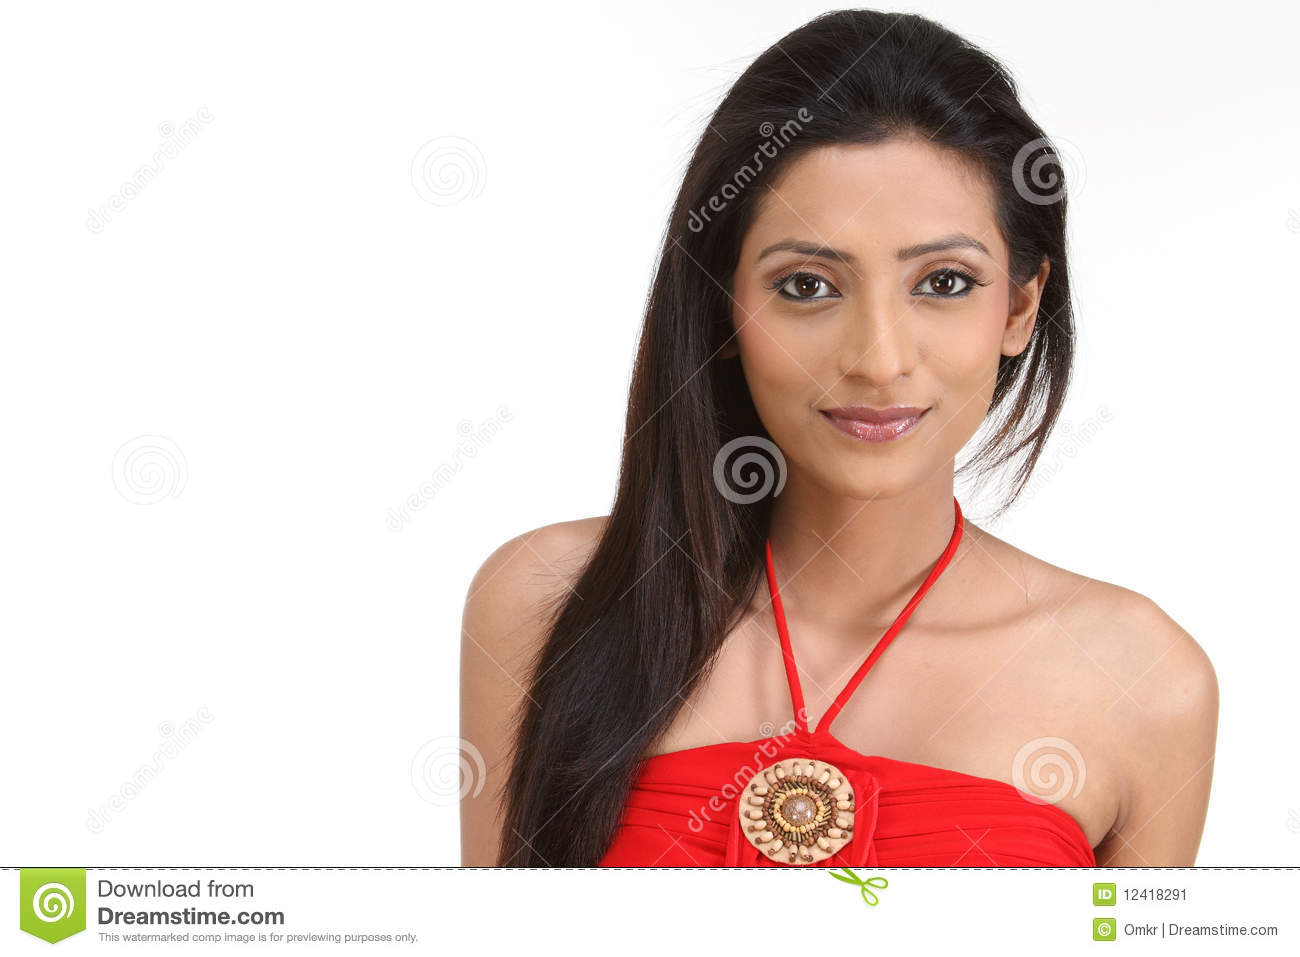 Indan young woman portrait stock image. Image of adult   20